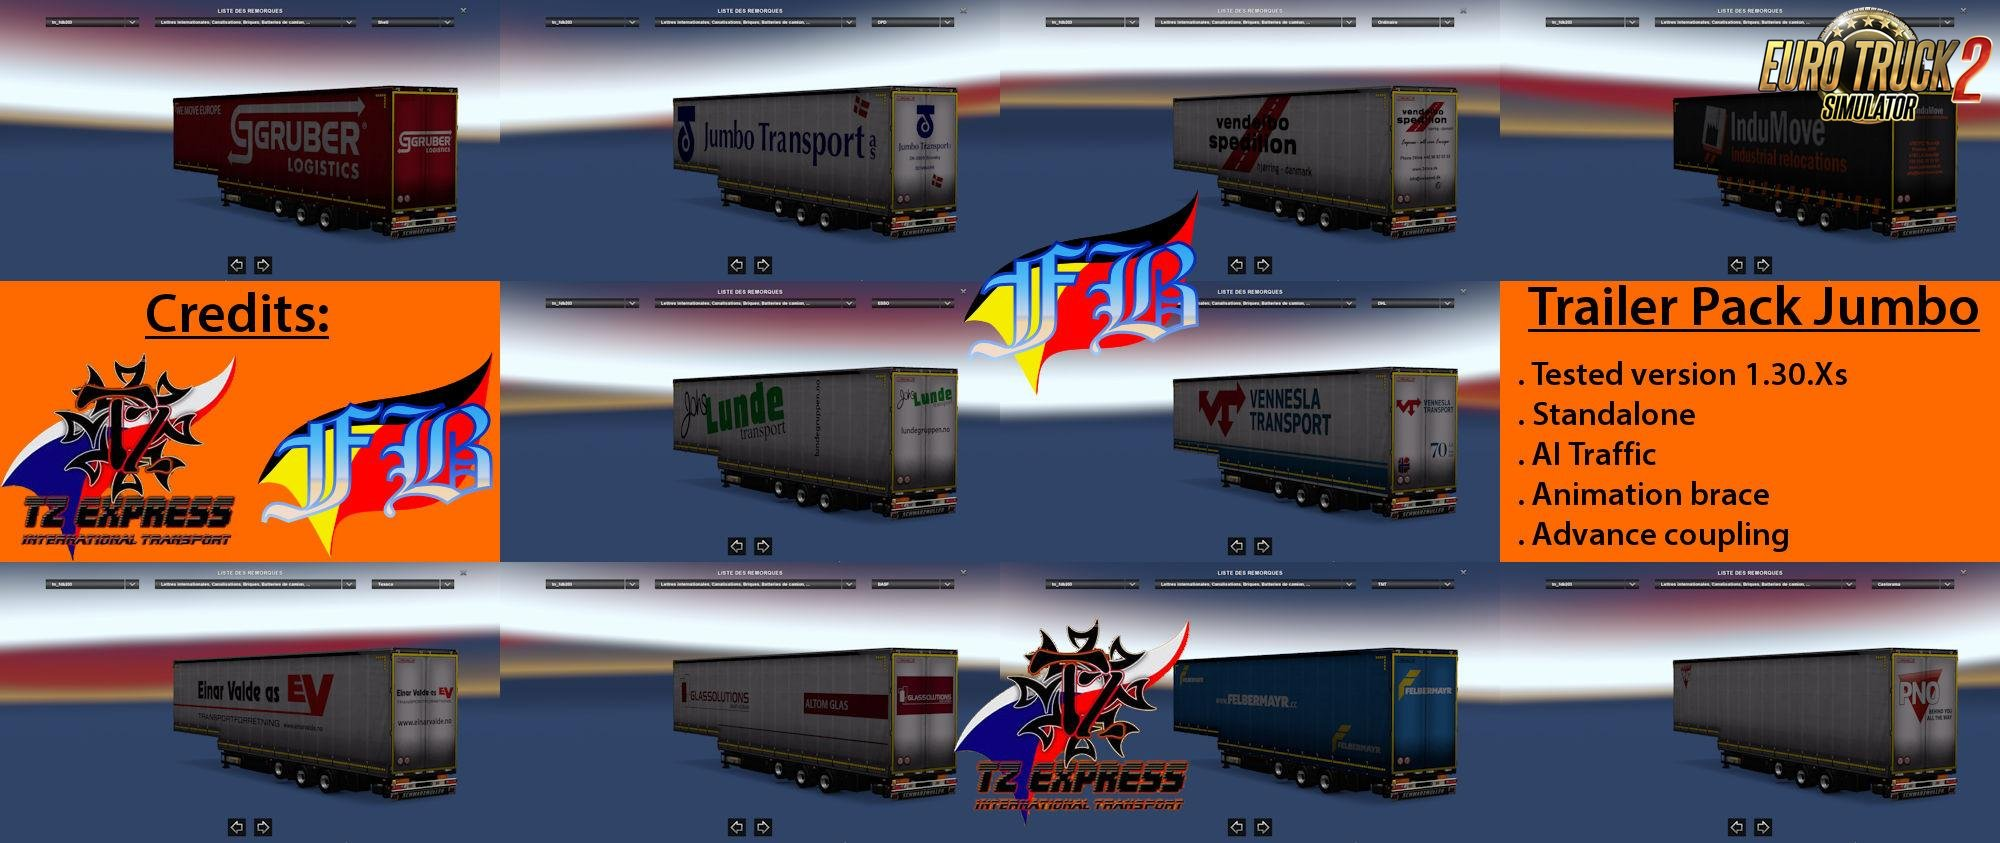 Trailer Pack Jumbo v1.30 for Ets2